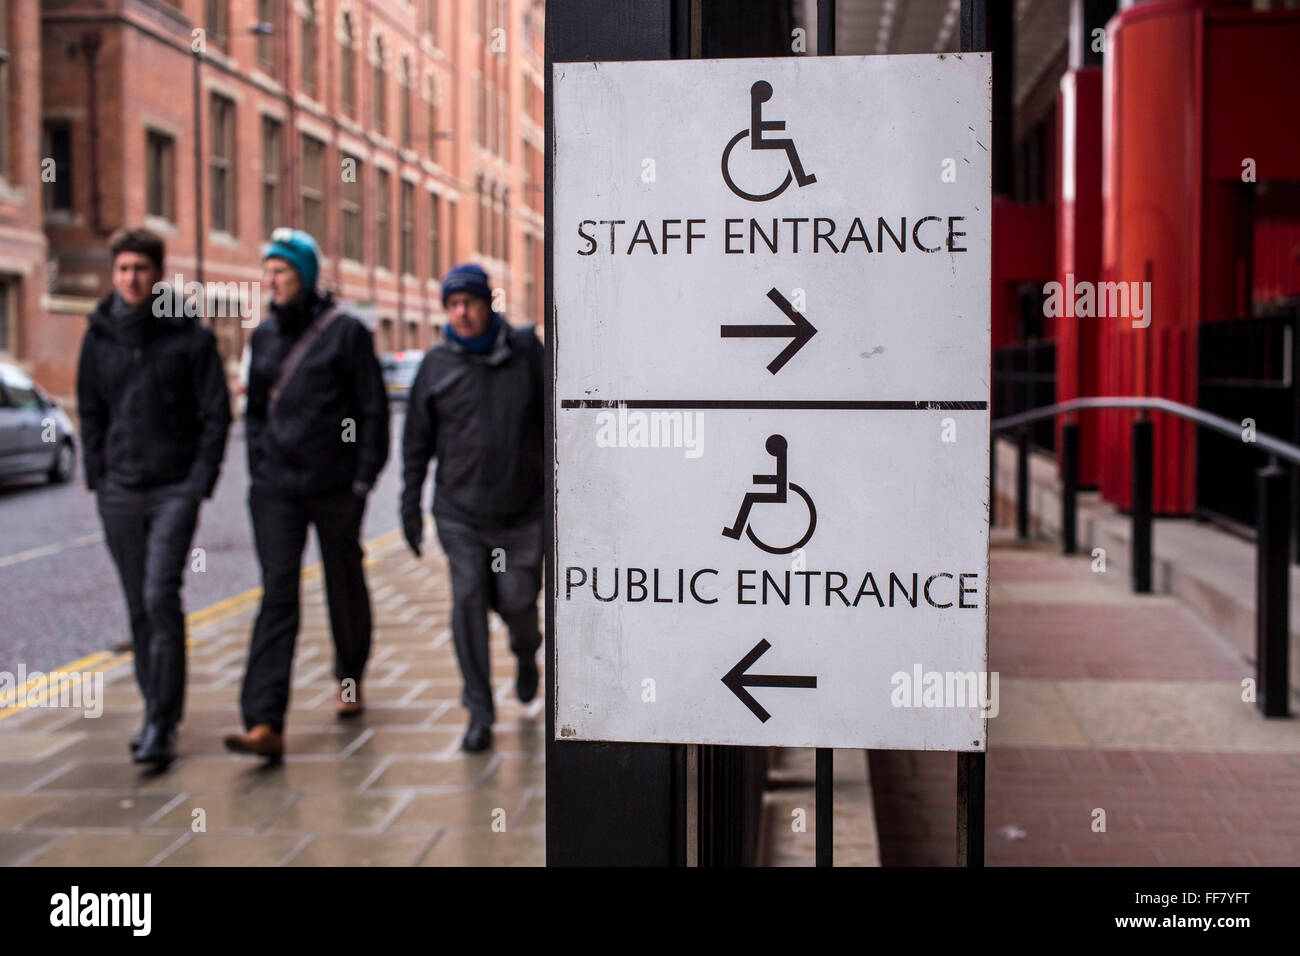 Two disability access signs outside the british library london one guides the way to the accessible staff entrance and the other for the public entrance the signs use the international symbol of access biocorpaavc